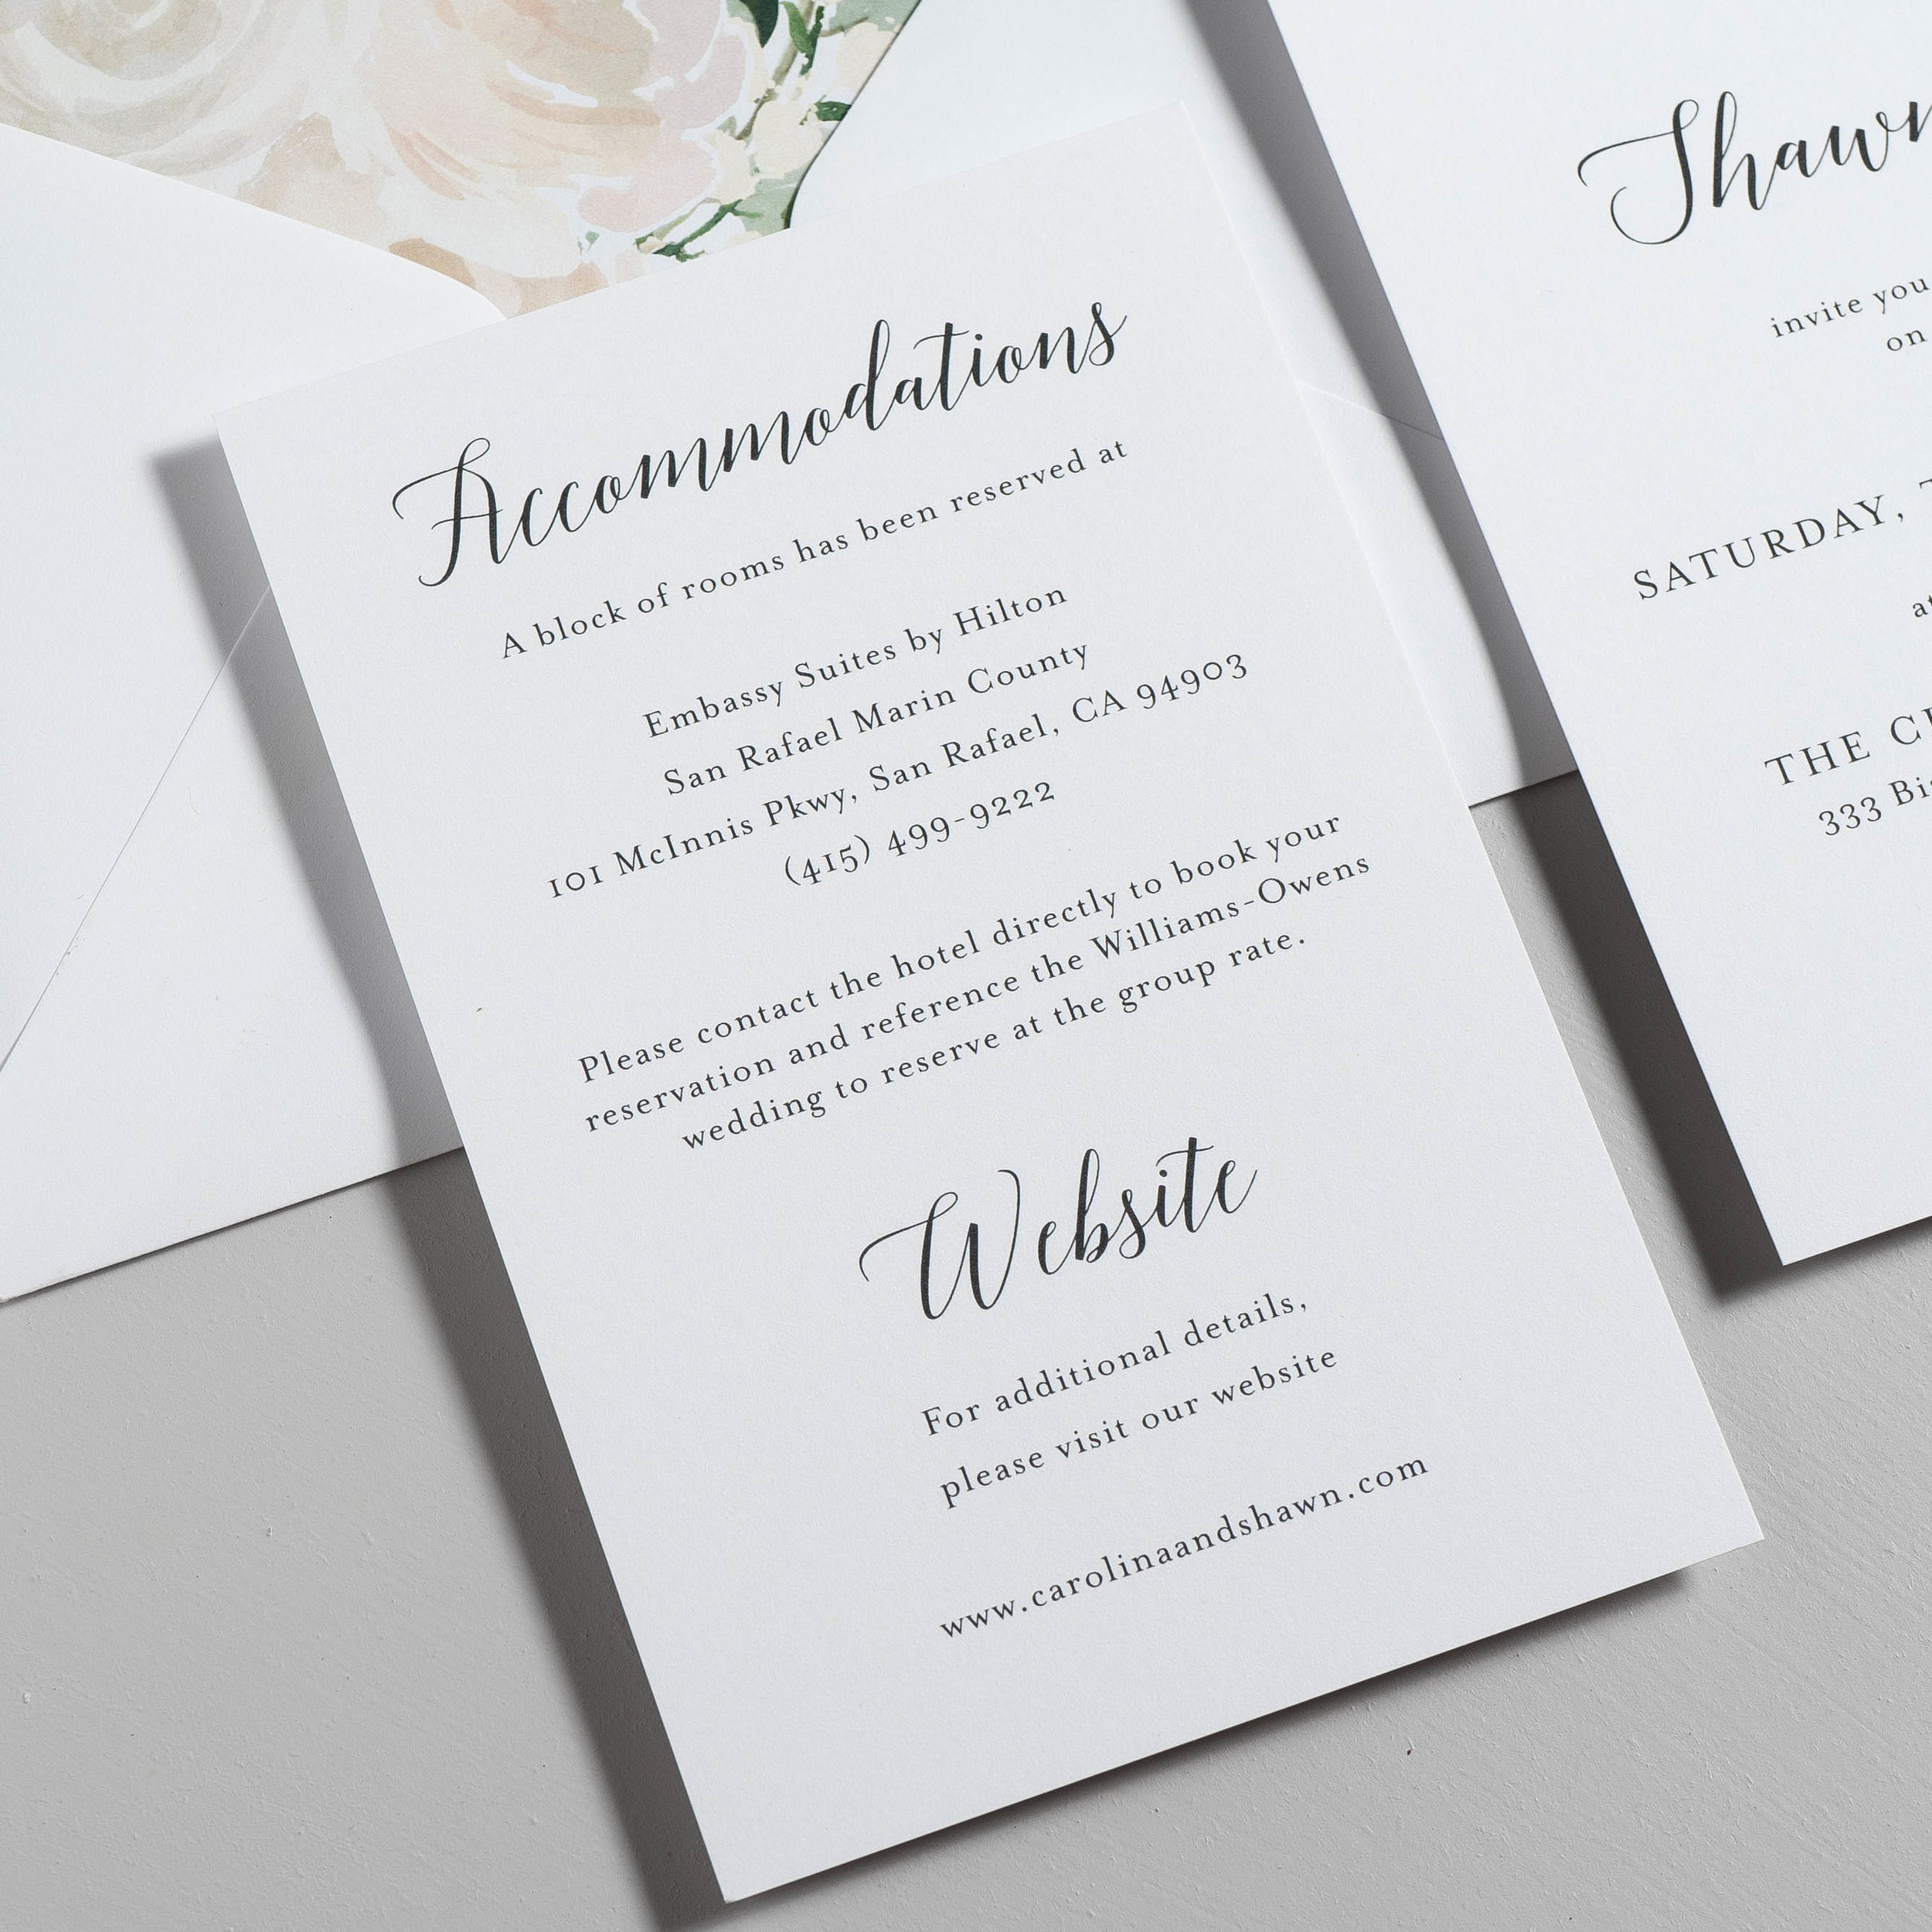 Blush Floral Calligraphy Wedding Invitations by Just Jurf-3b.jpg